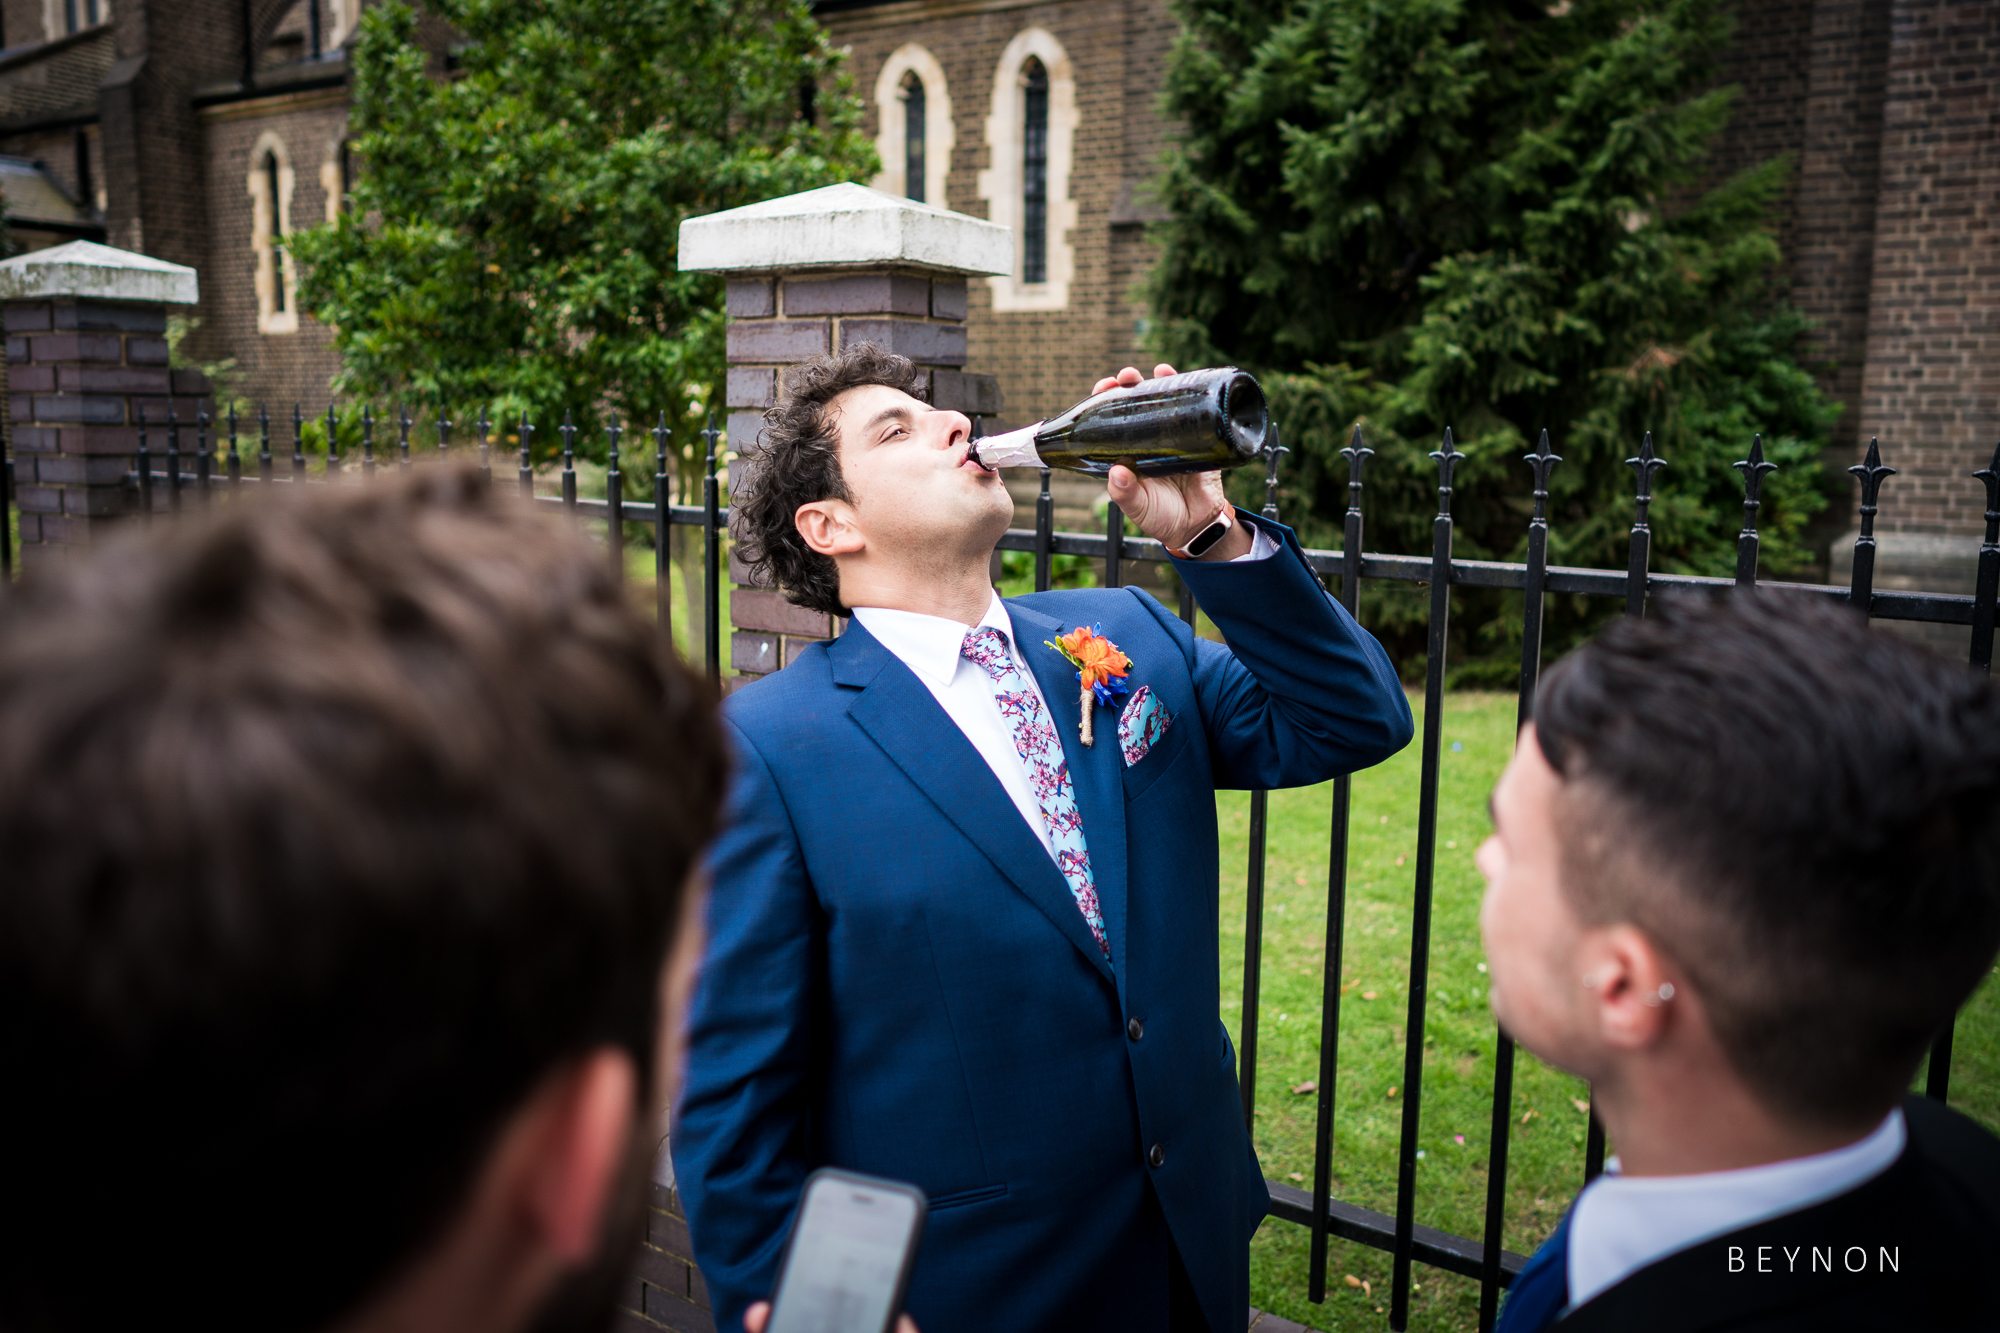 The groom downs a bottle of wine.